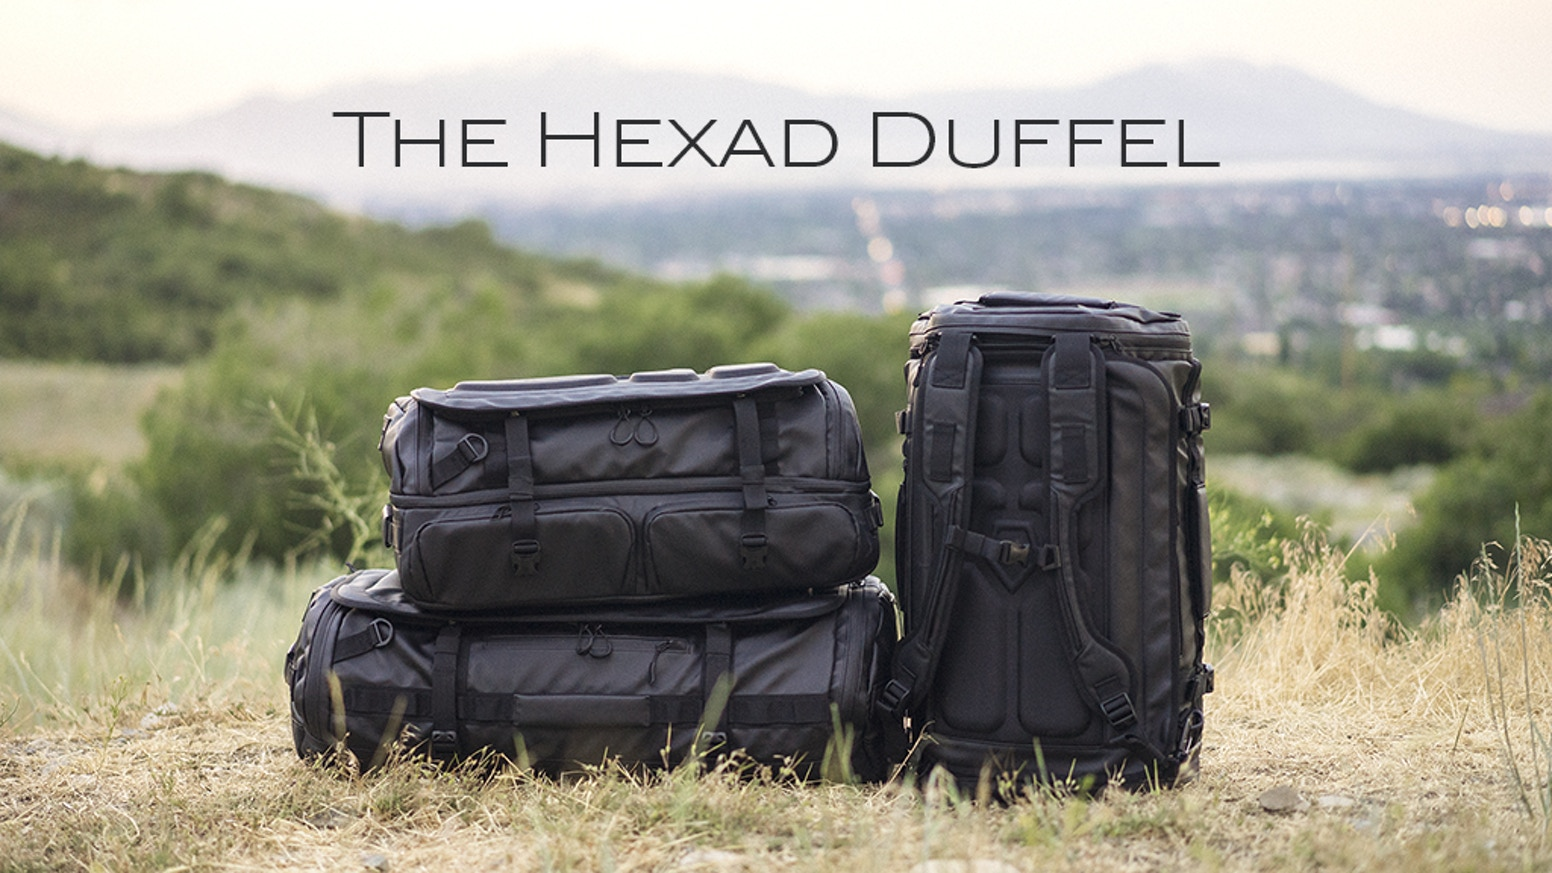 More functional than a traditional duffel. More versatile than a dedicated travel bag. Missed our campaign! Order now through the link below.